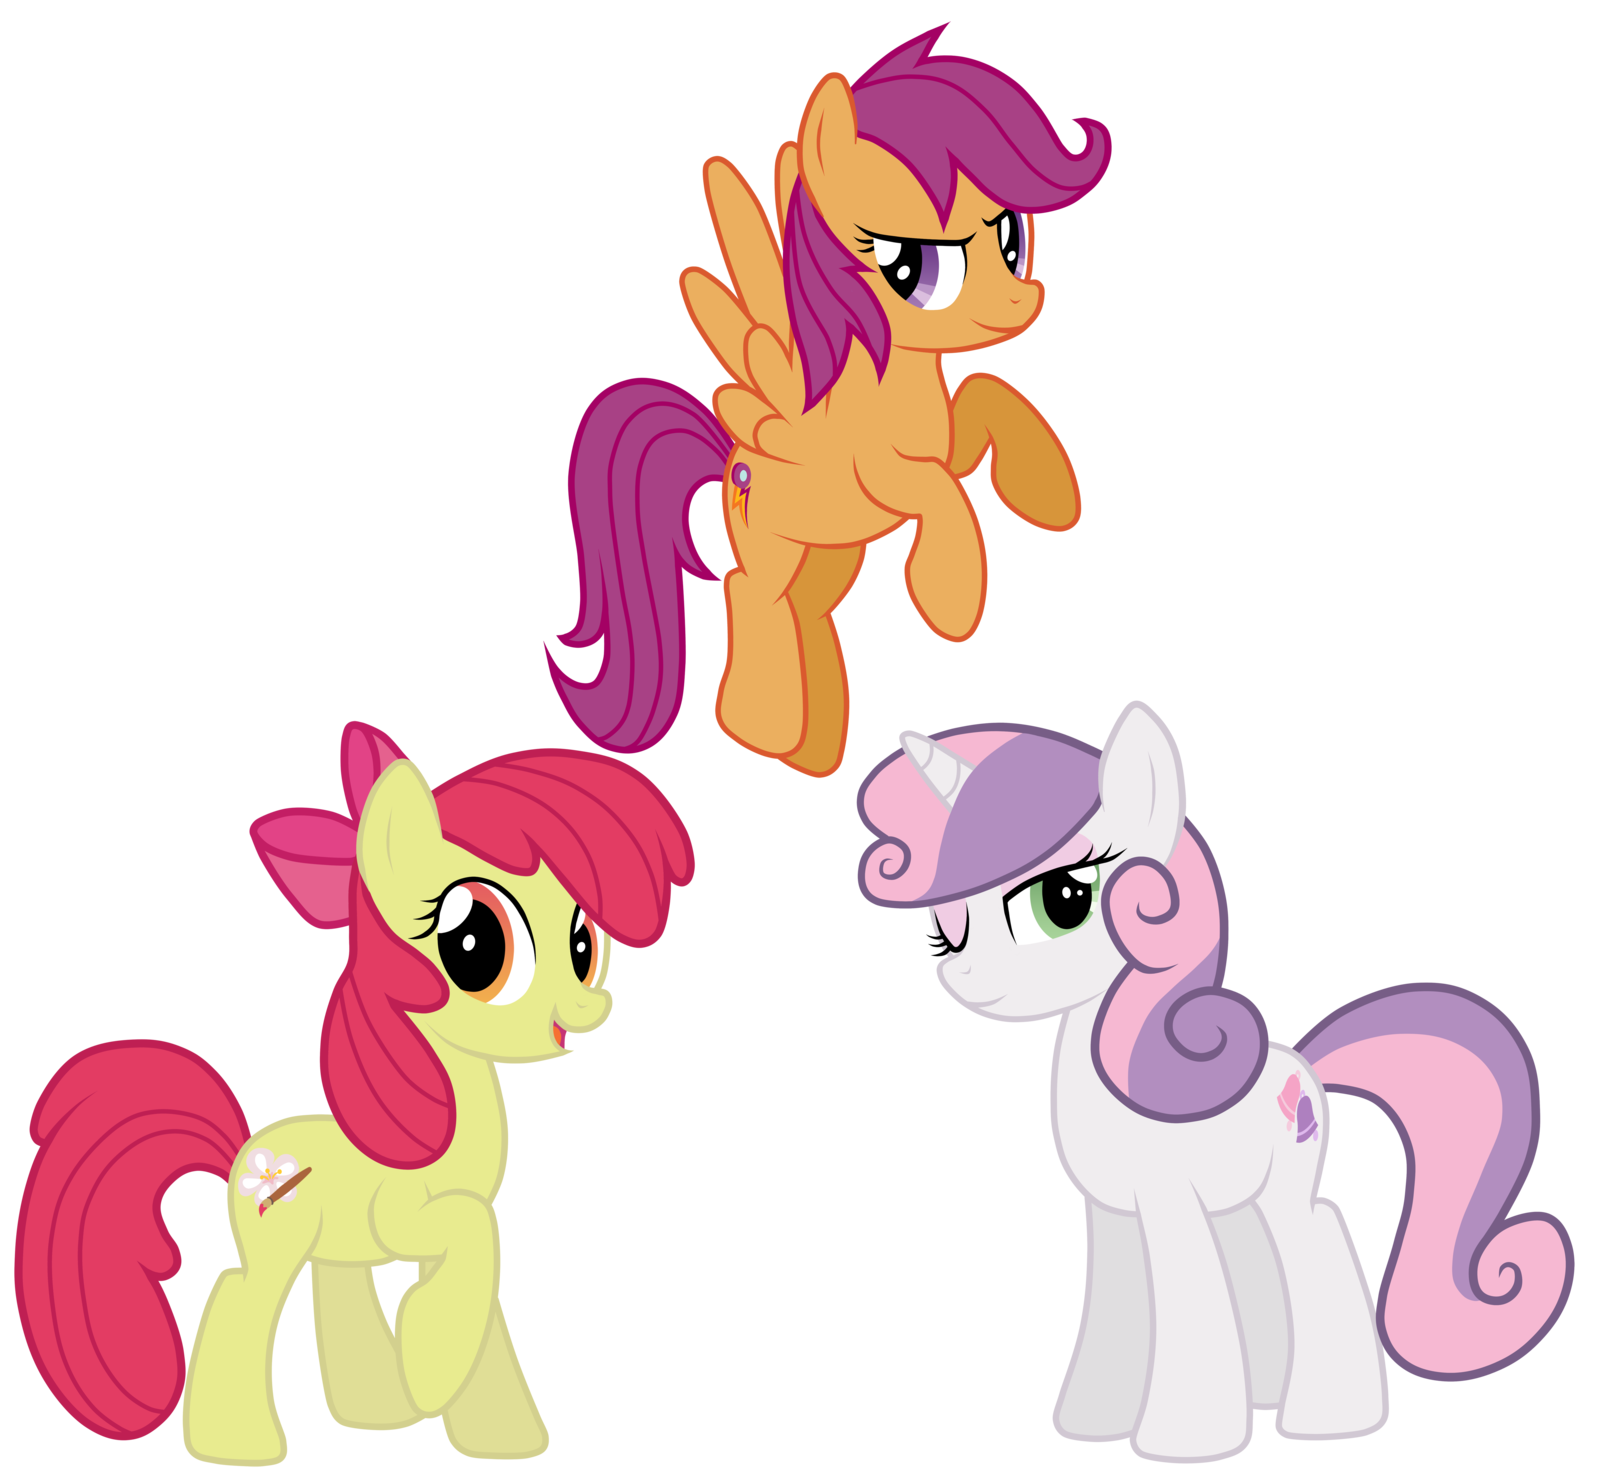 Grown Up Cmc My Little Pony Friendship Is Magic Know Your Meme First vector, feedback is appreciated (scootaloo's fear face). little pony friendship is magic